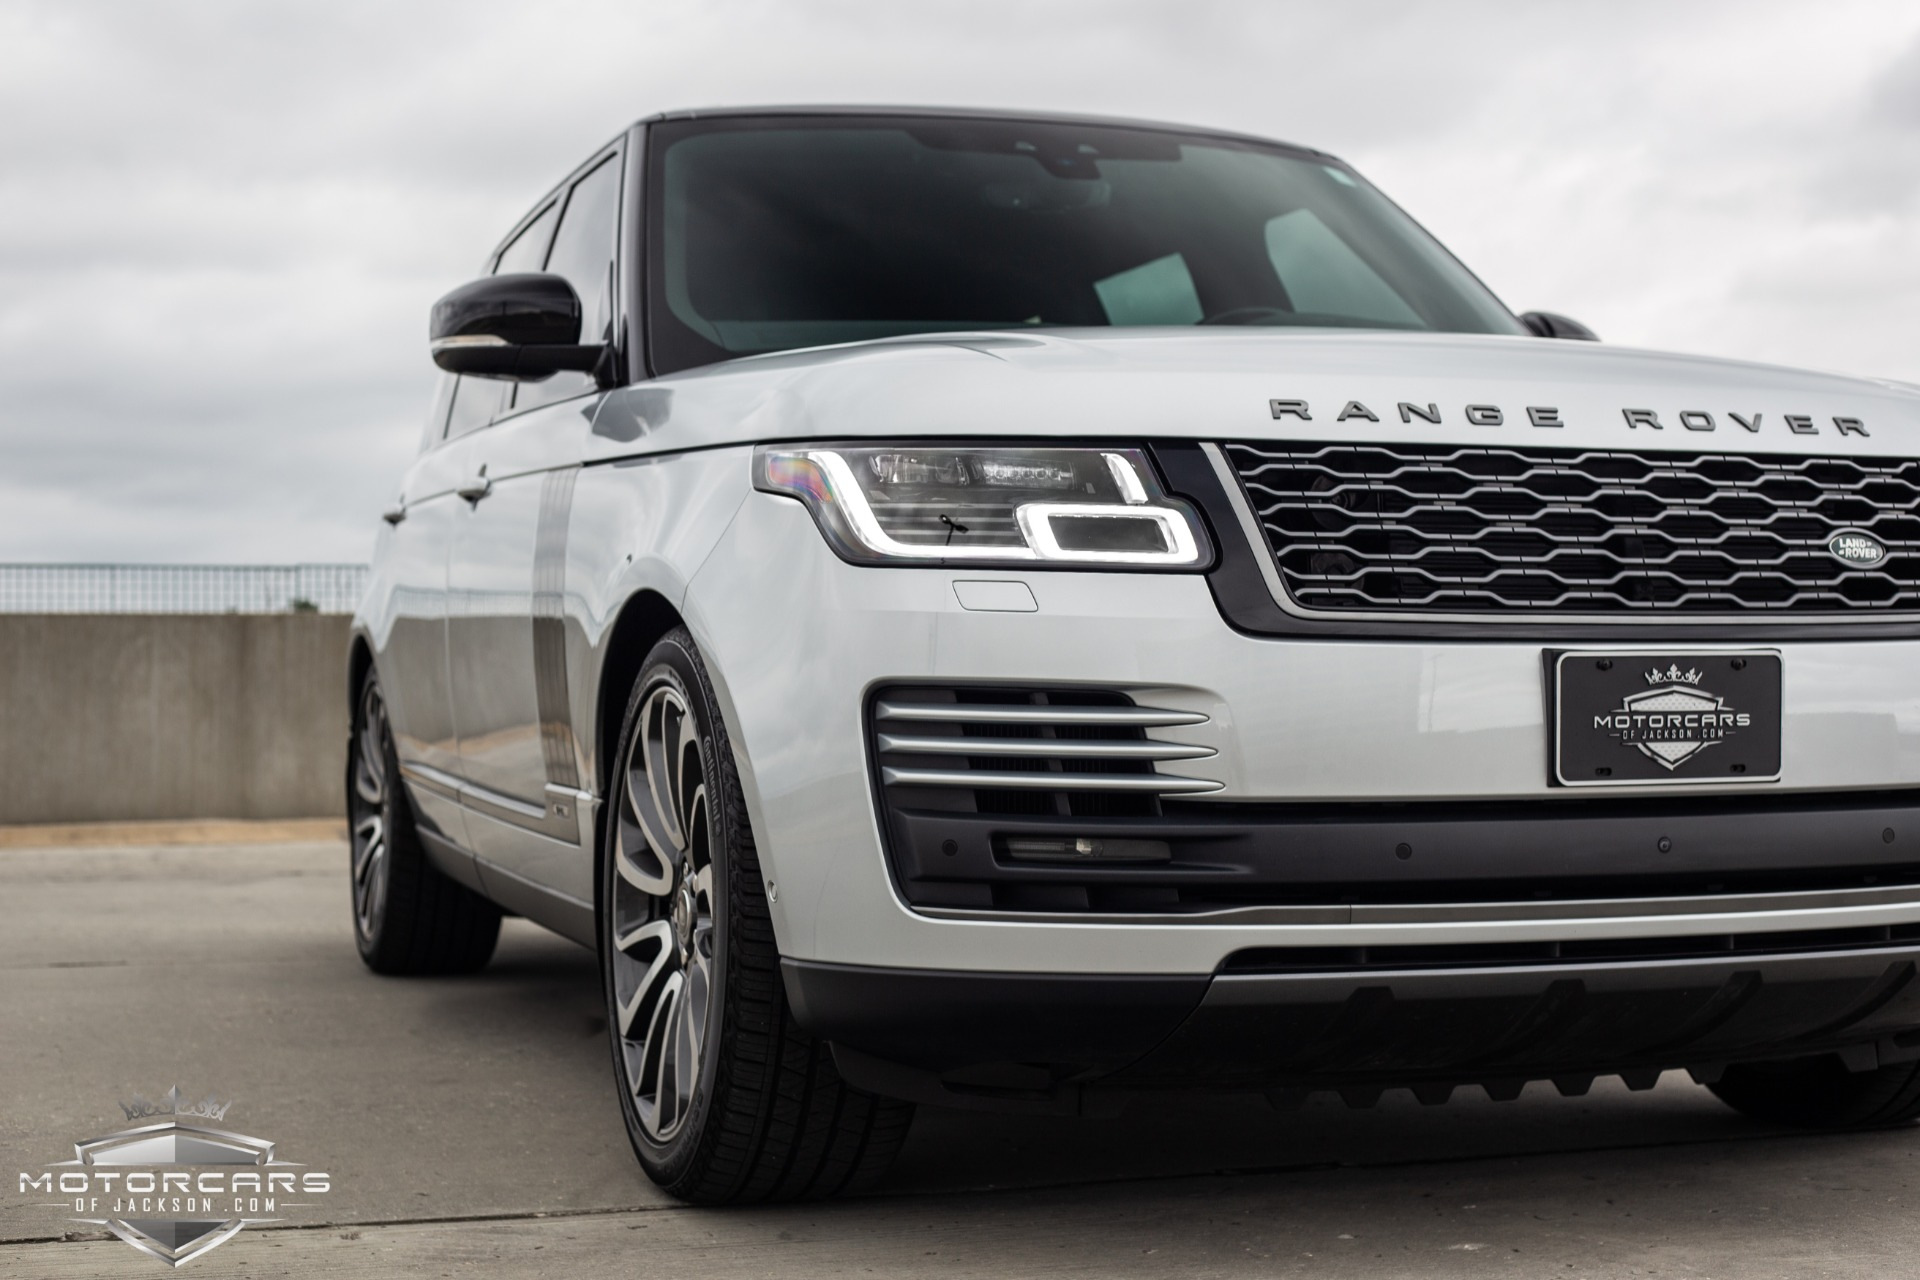 Used-2018-Land-Rover-Range-Rover-Supercharged-LWB-for-sale-Jackson-MS